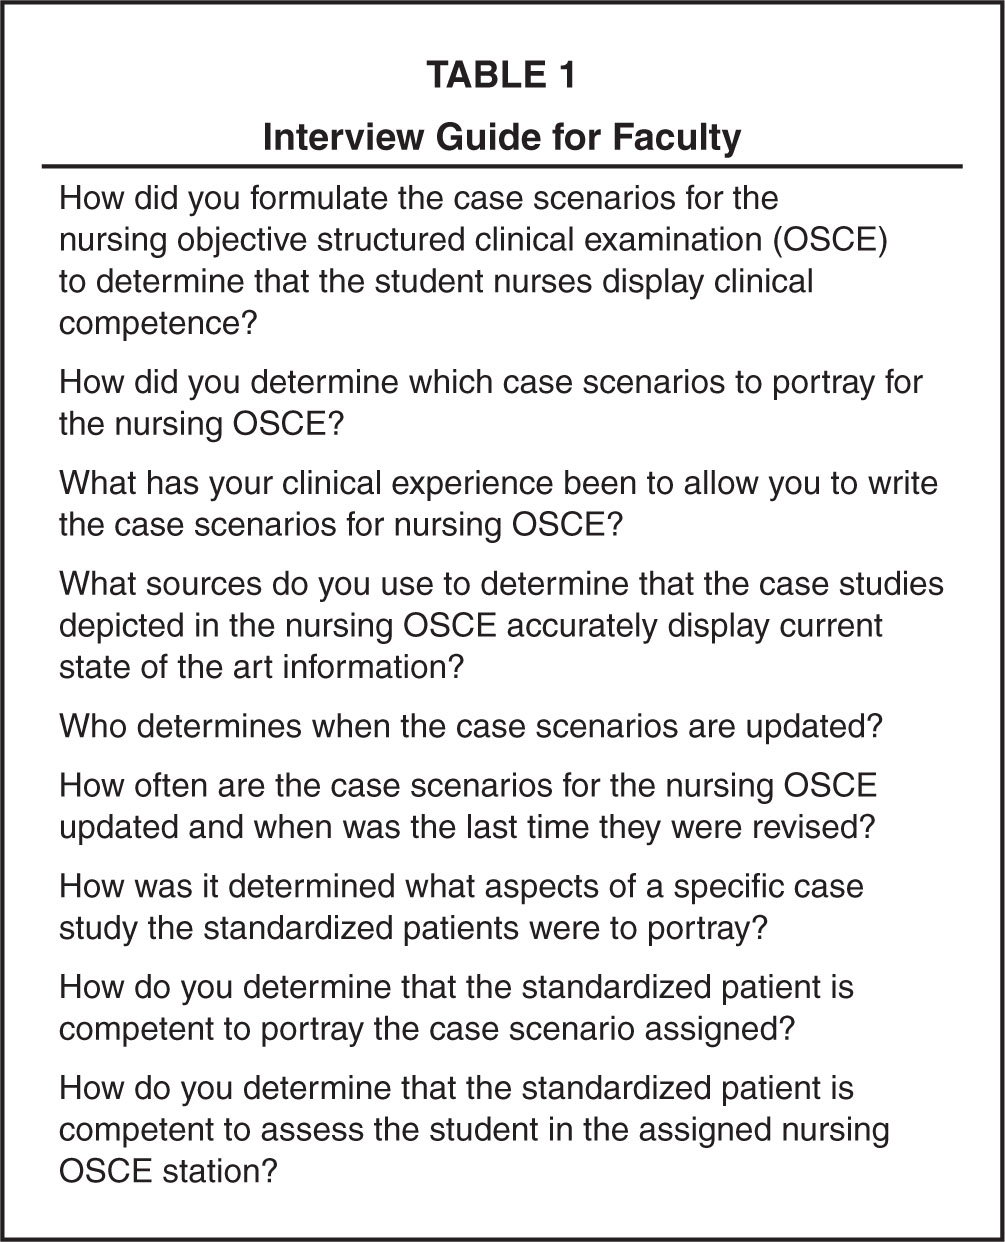 Interview Guide for Faculty